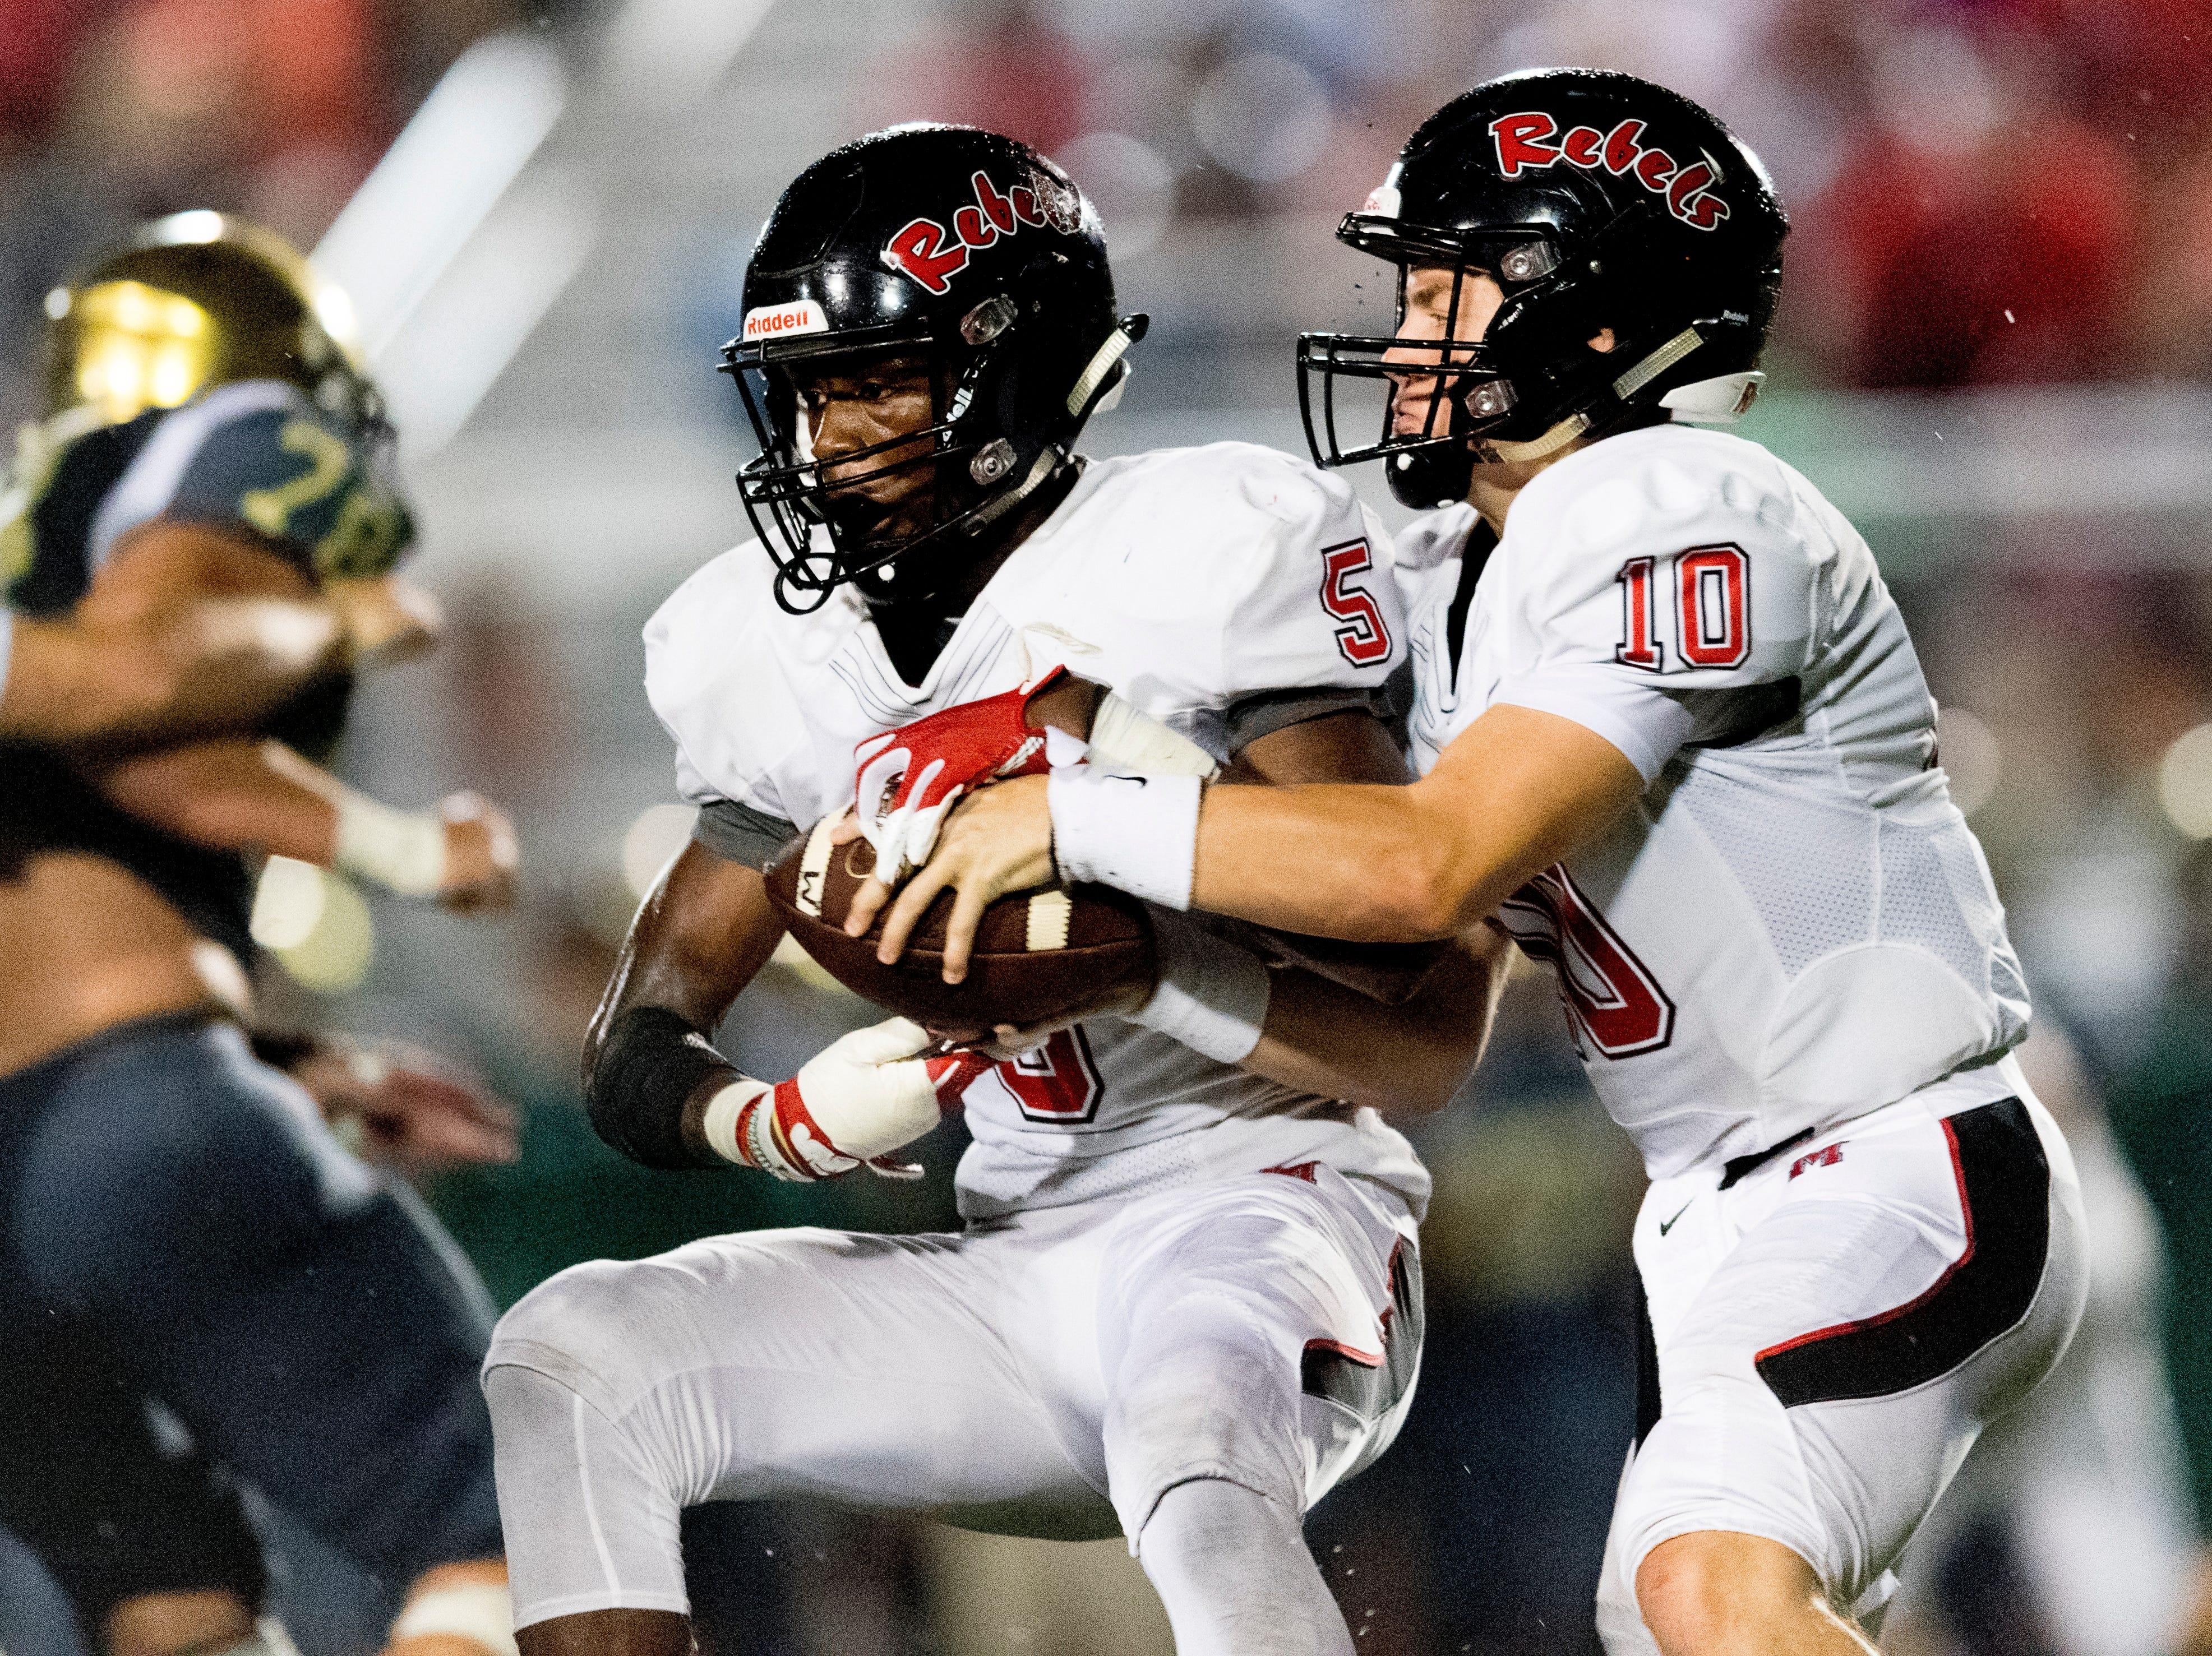 Maryville's Braden Carnes (10) hands the ball off to Maryville's DaVon Kimble (5) during a football game between Maryville and Catholic at Catholic High School in Knoxville, Tennessee on Friday, August 17, 2018.